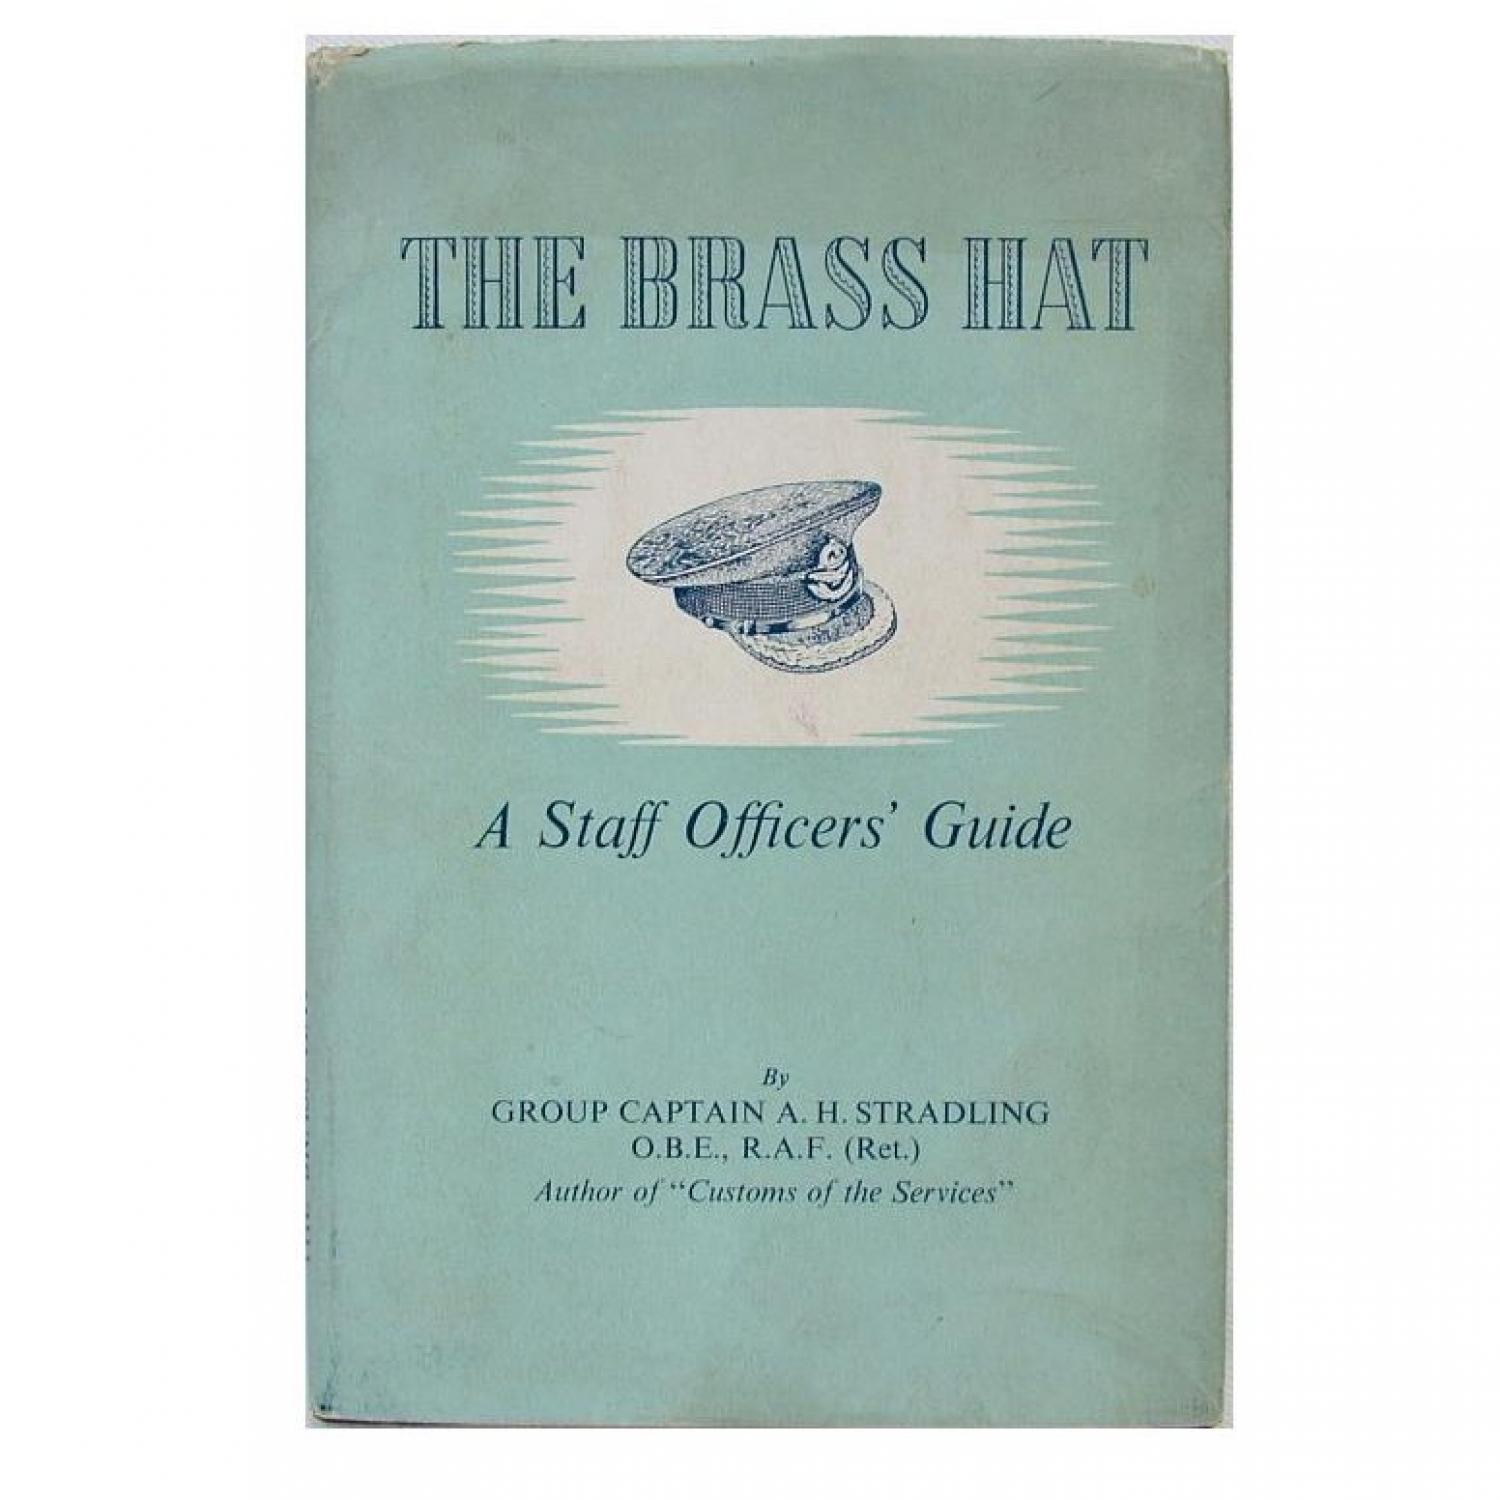 The Brass Hat - A Staff Officers' Guide